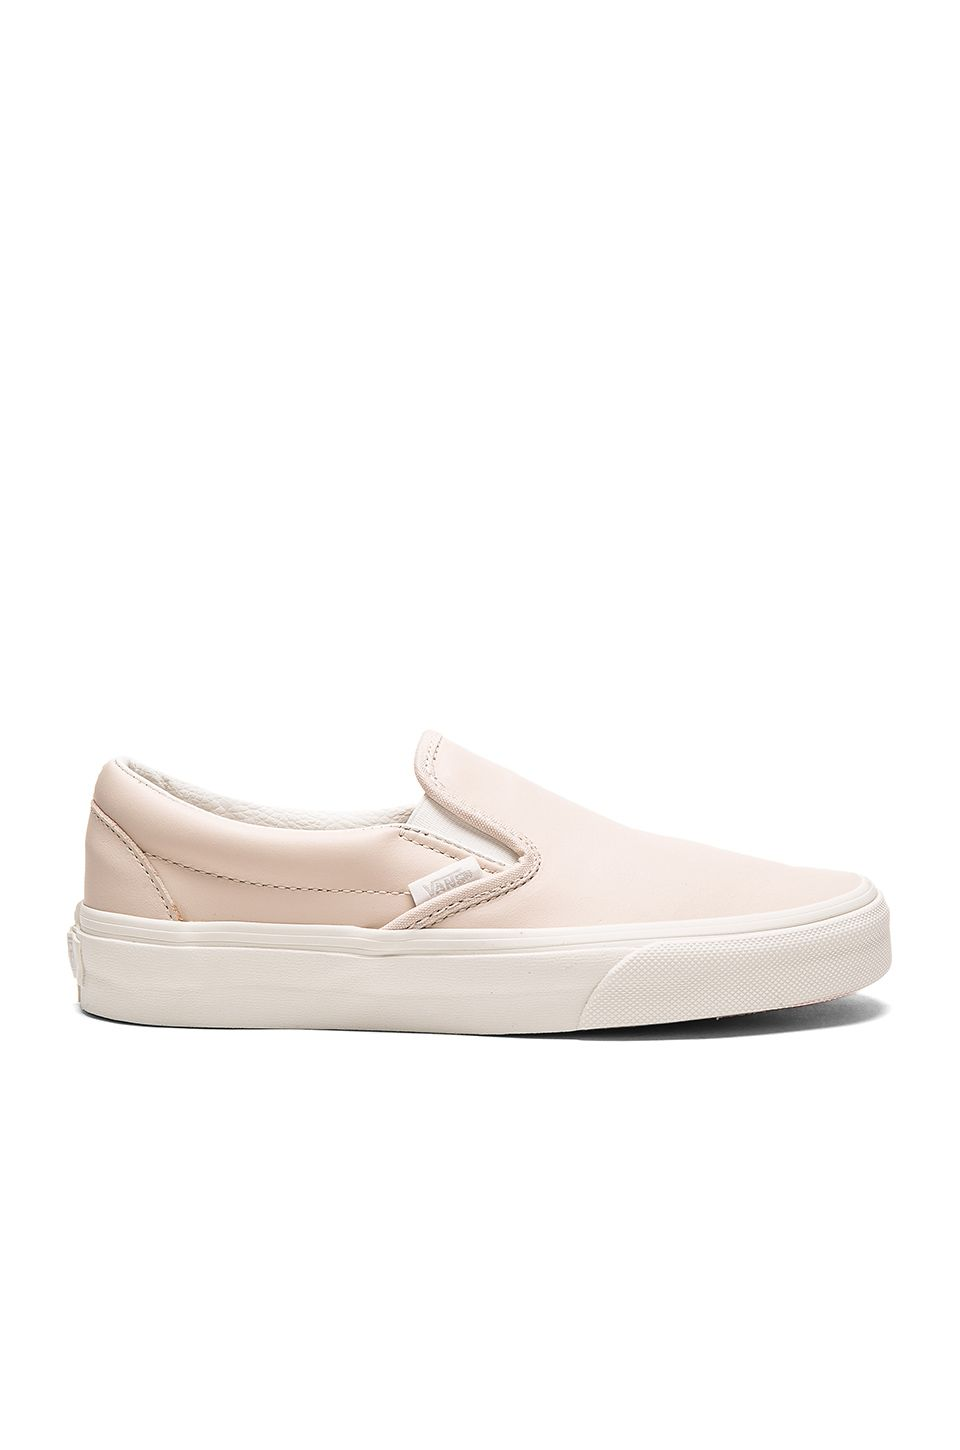 8b3623790e1d Vans Leather Classic Slip-On in Whispering Pink   Blanc de Blanc ...